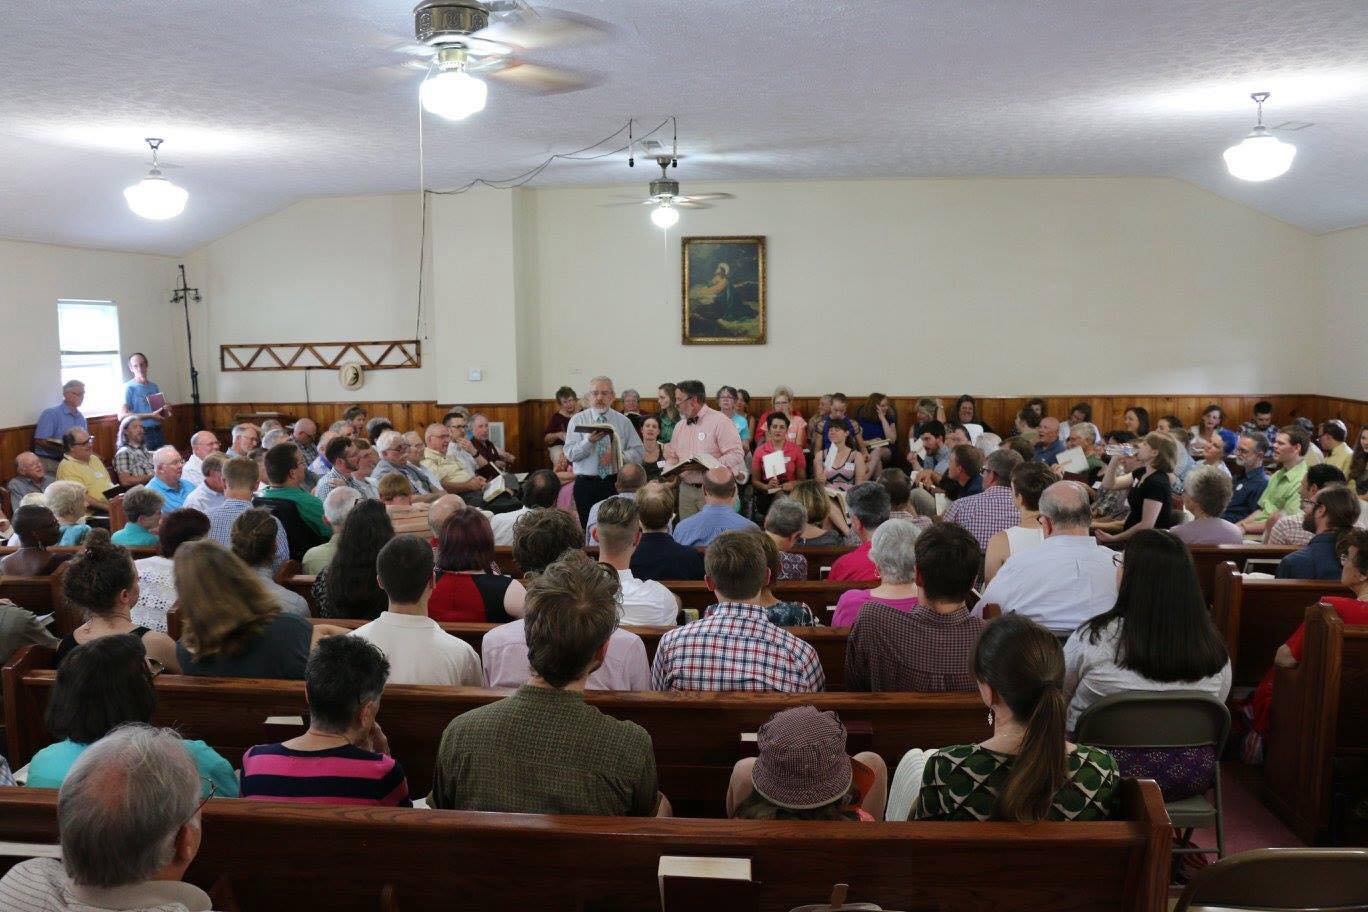 That's me on the right leading with my friend Sam Somers in Henegar, AL last summer.